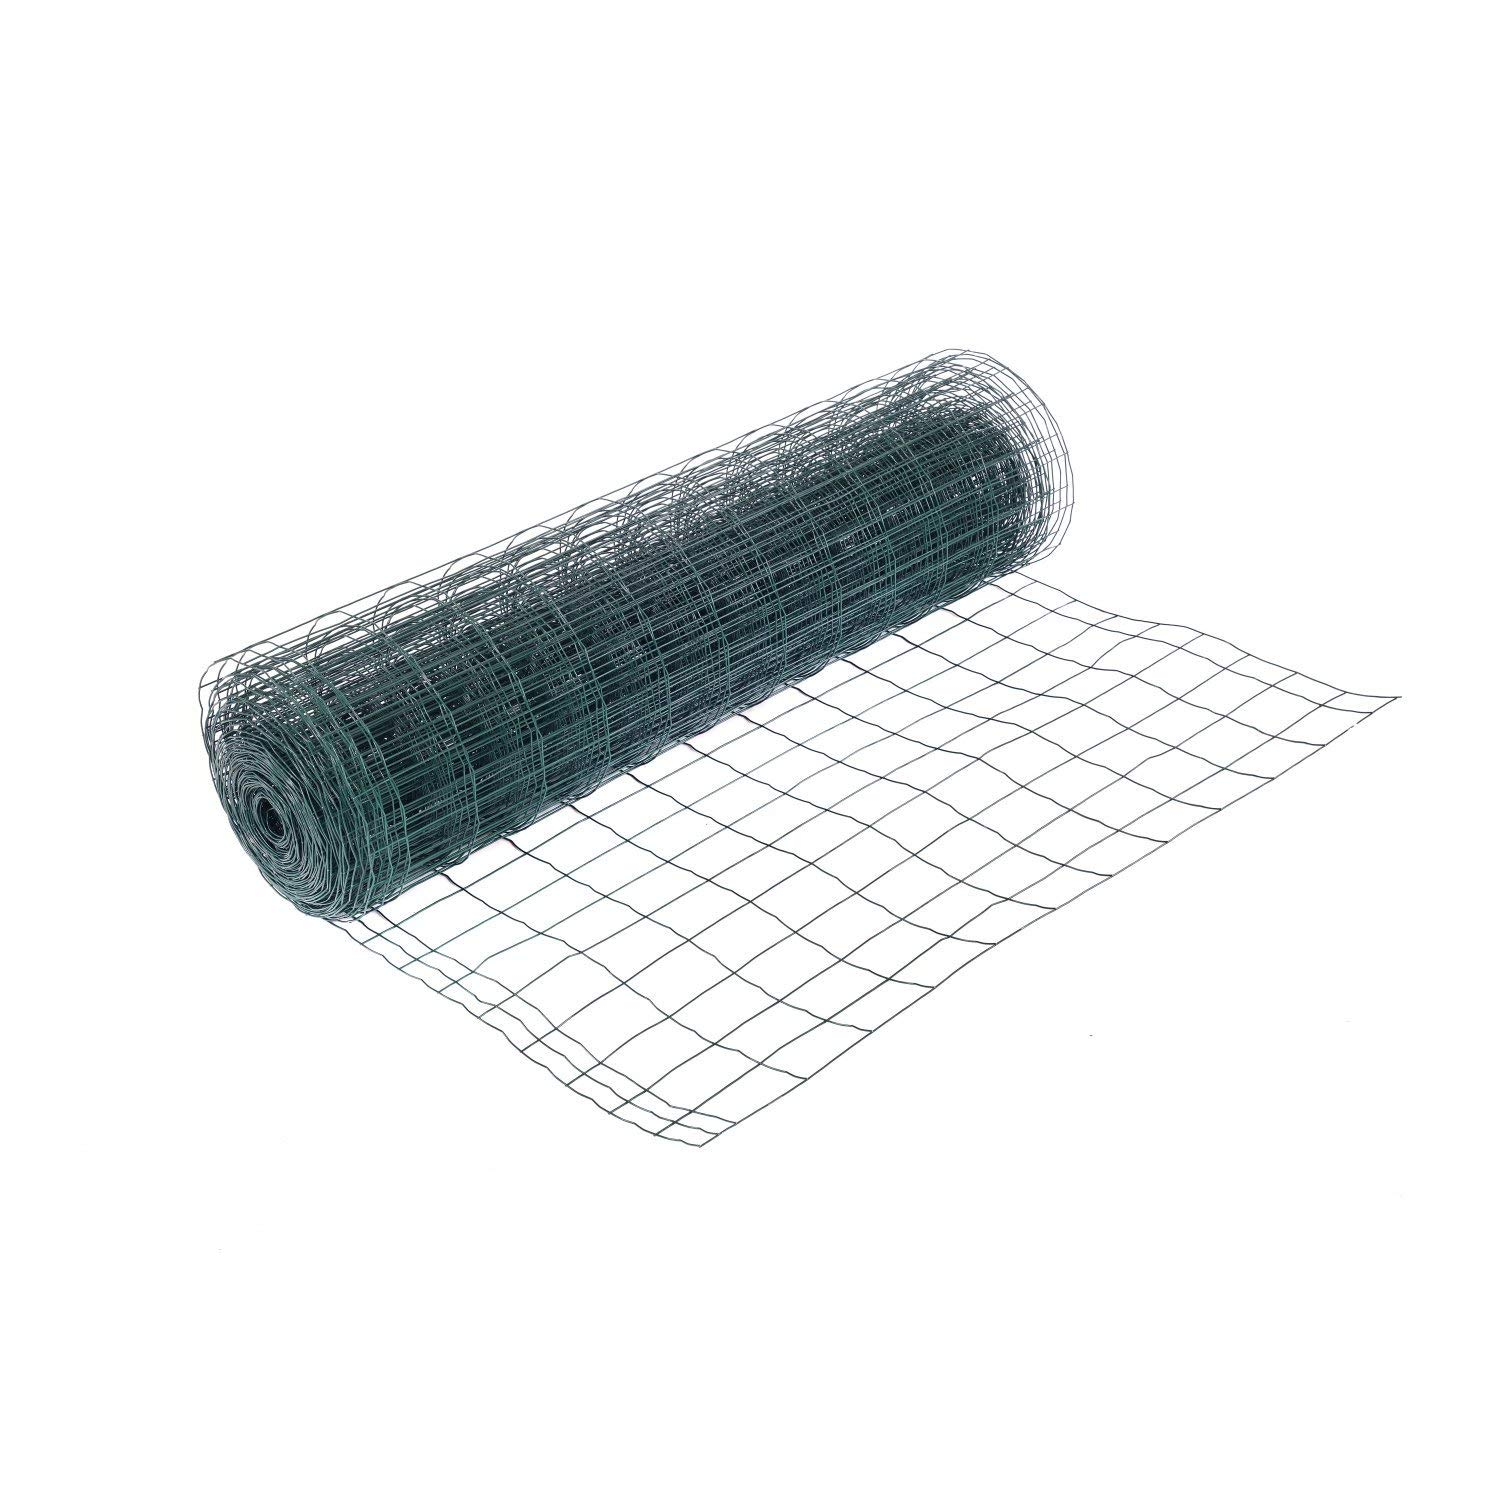 Oypla 1.2m x 25m Green PVC Coated Galvanised Steel Wire Mesh Fencing Garden Euro Stock Fencing